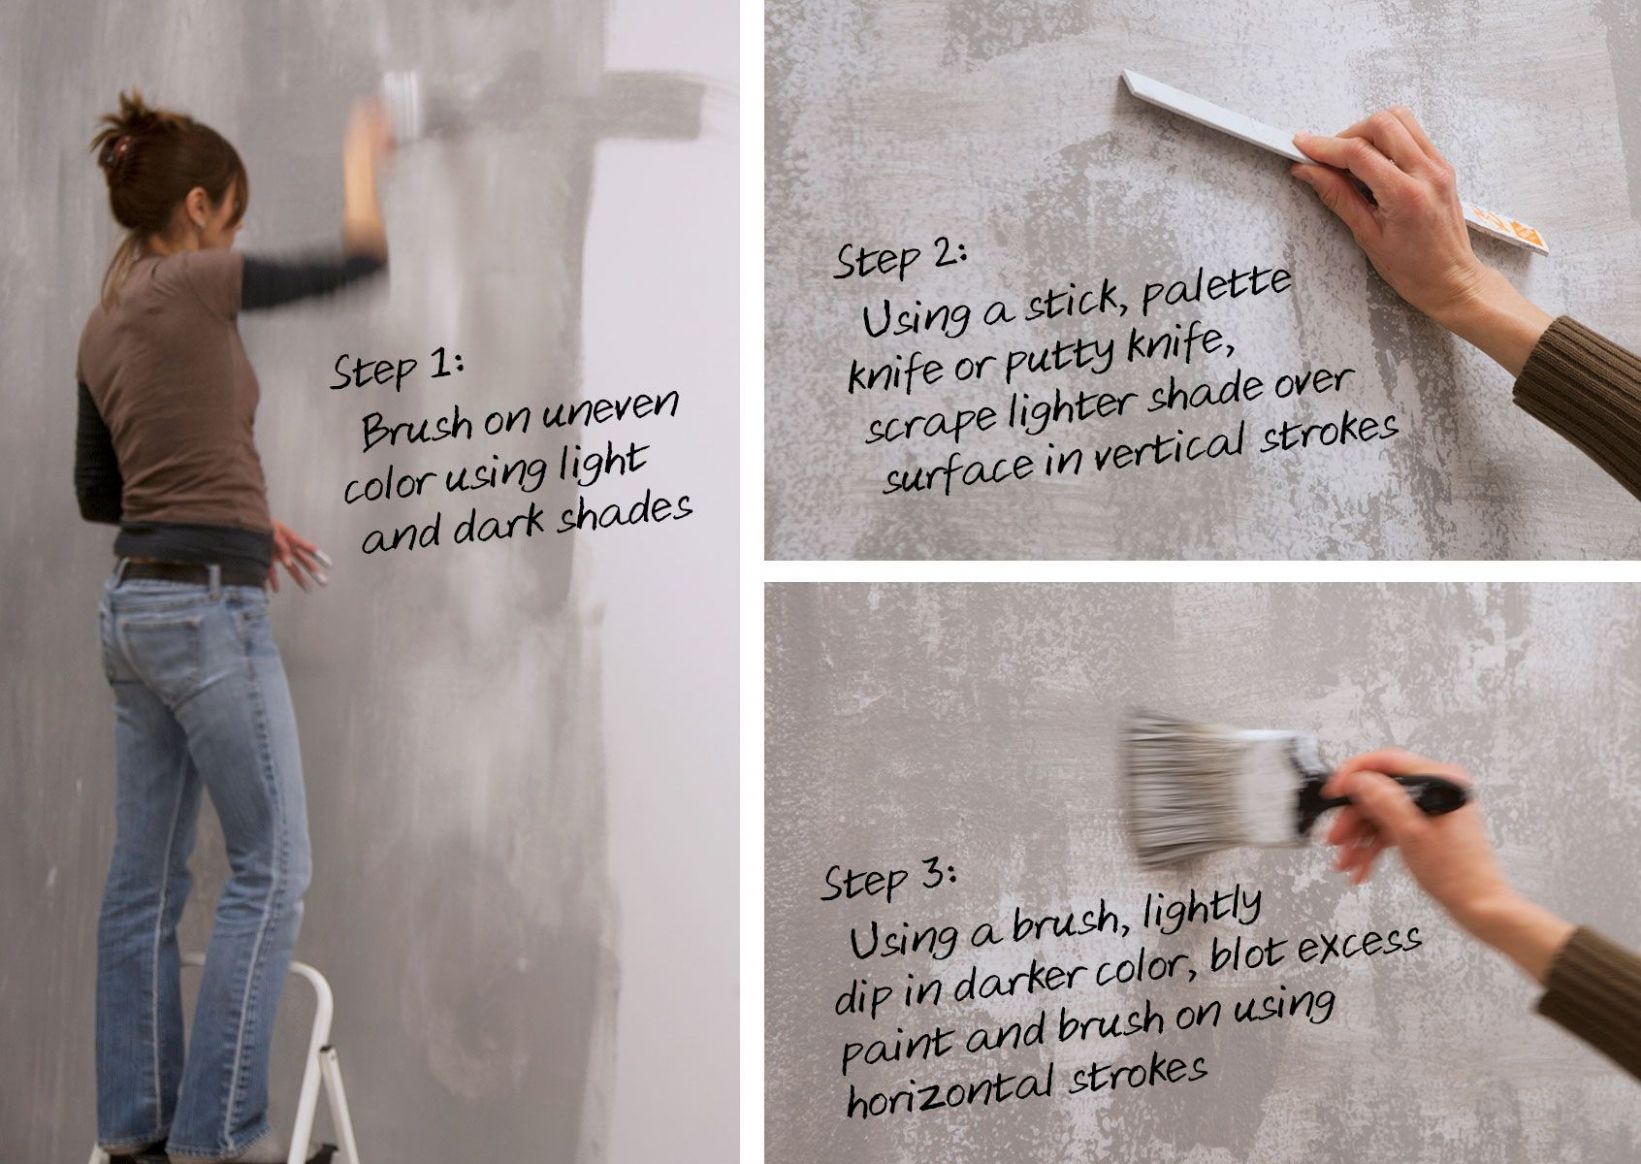 Concrete Wall Finishing Techniques | By Colleen Stiles | 9-9 ..